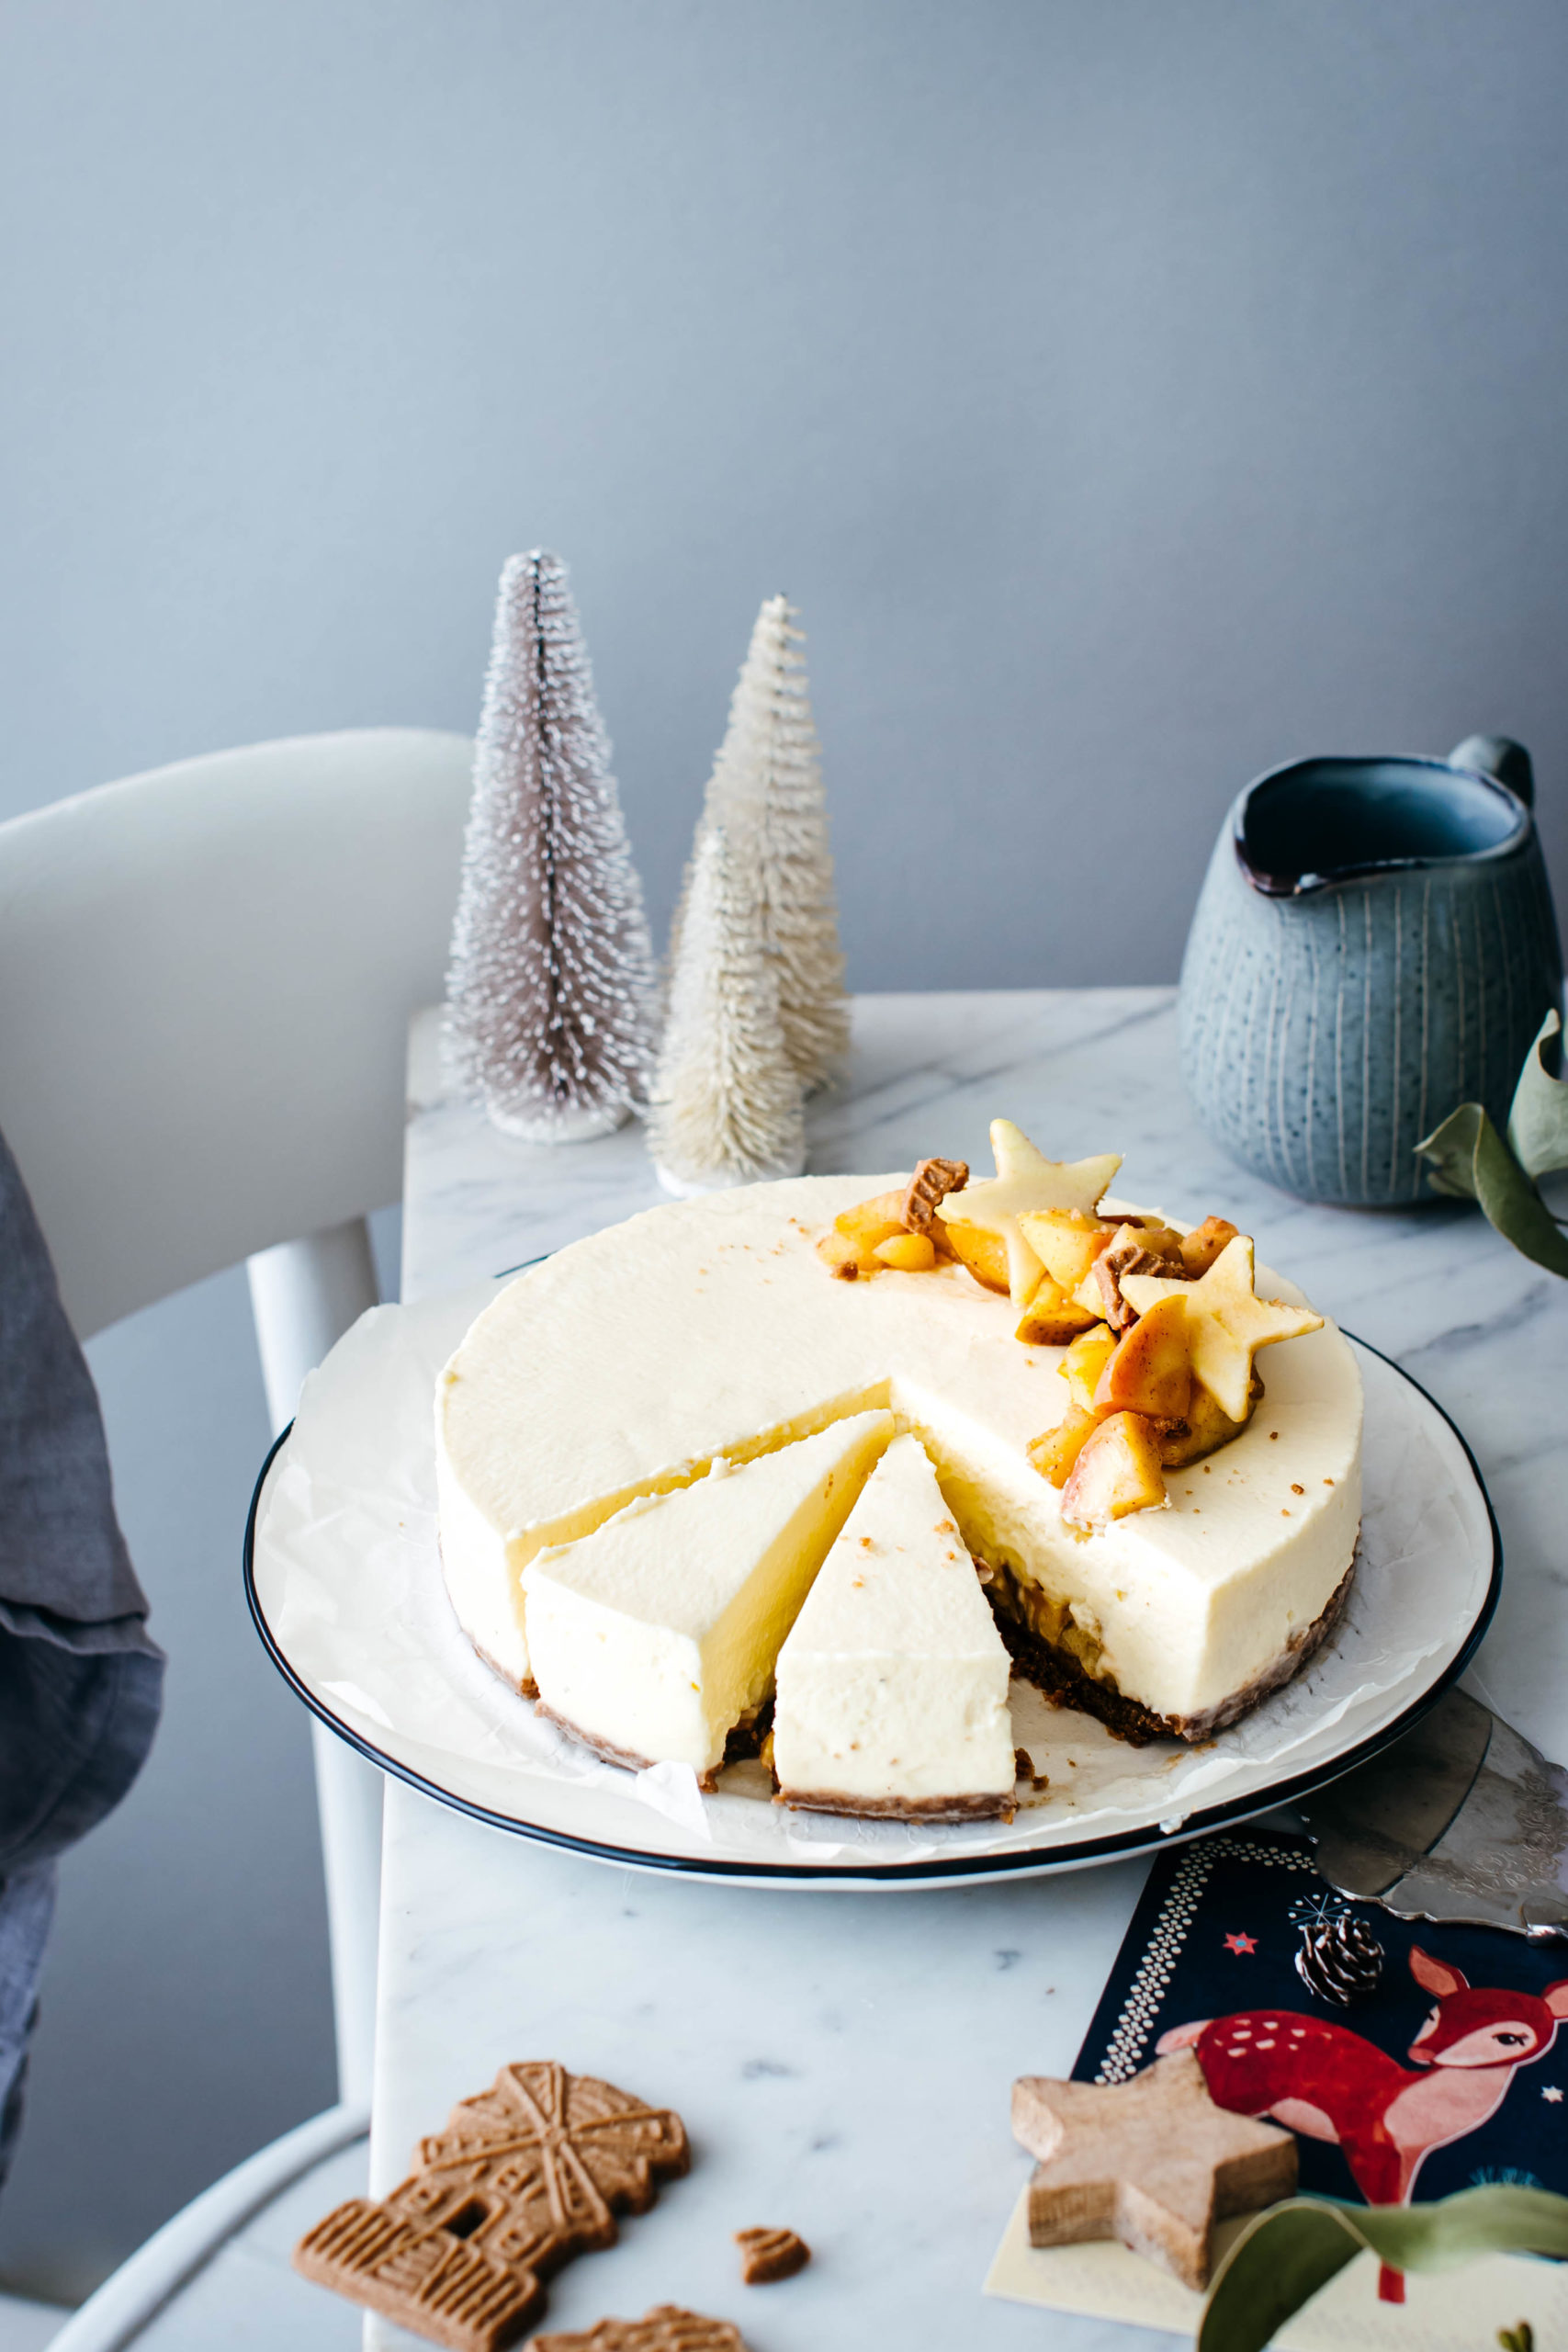 White Chocolate Cheesecake mit Bratapfelkompott